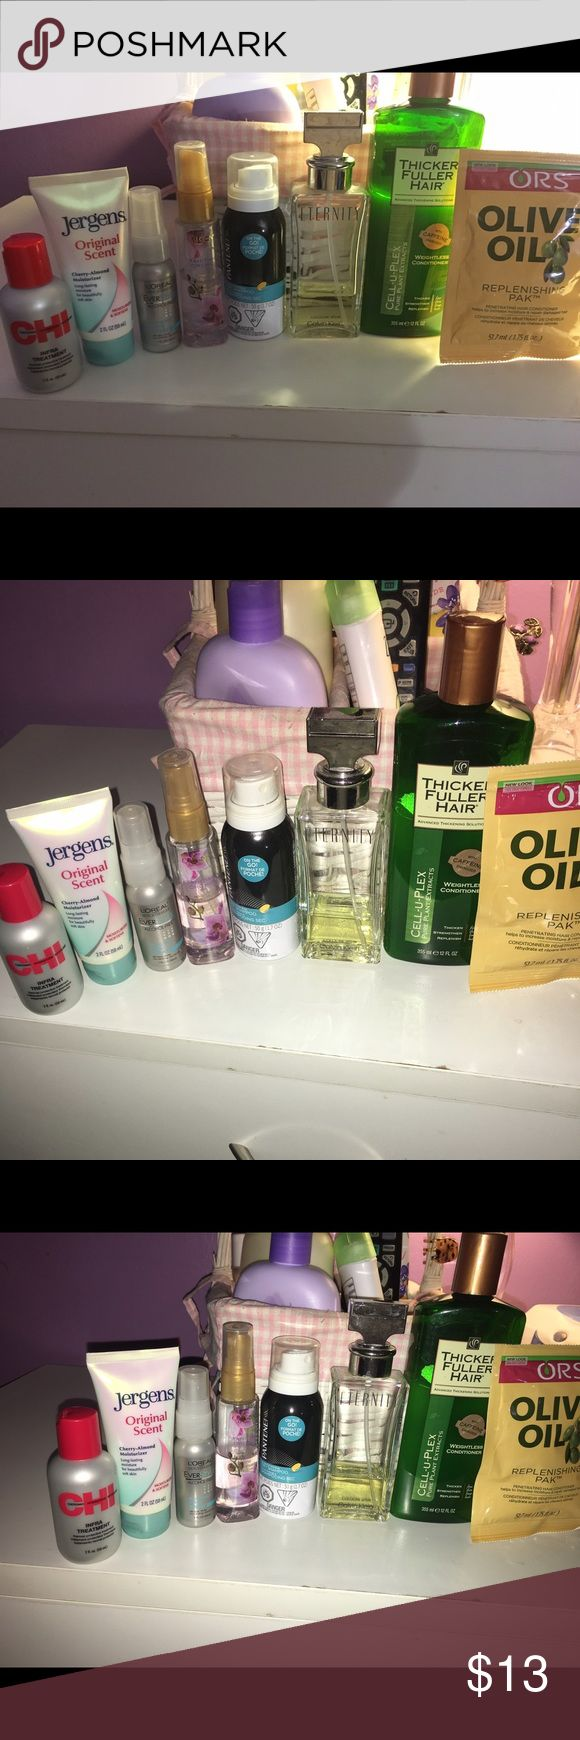 ‼️SALE‼️Hair and body accessories & Calvin Klein P All used, some are half way and some more of half. Calvin klein perfume for woman, hair thicker condition, jergen hand lotion, pantene dry shampoo, loreal hair serum, calgon body spray, olive oil conditioner (new)., chi treatment calvin klein, chi, loreal Accessories Hair Accessories